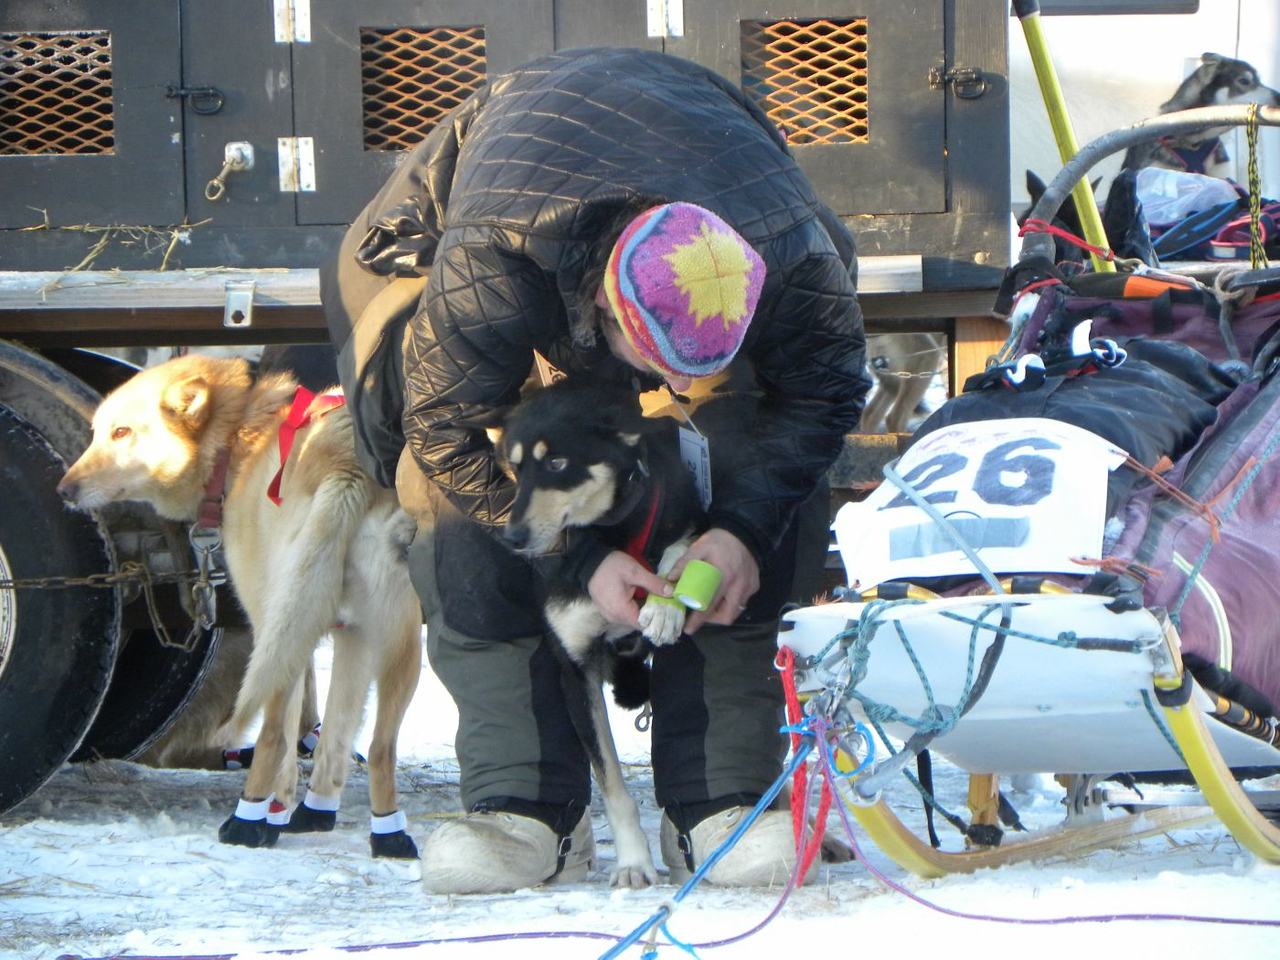 Putting booties on the dogs' feet to protect them from icy trails, which can cut their pads.